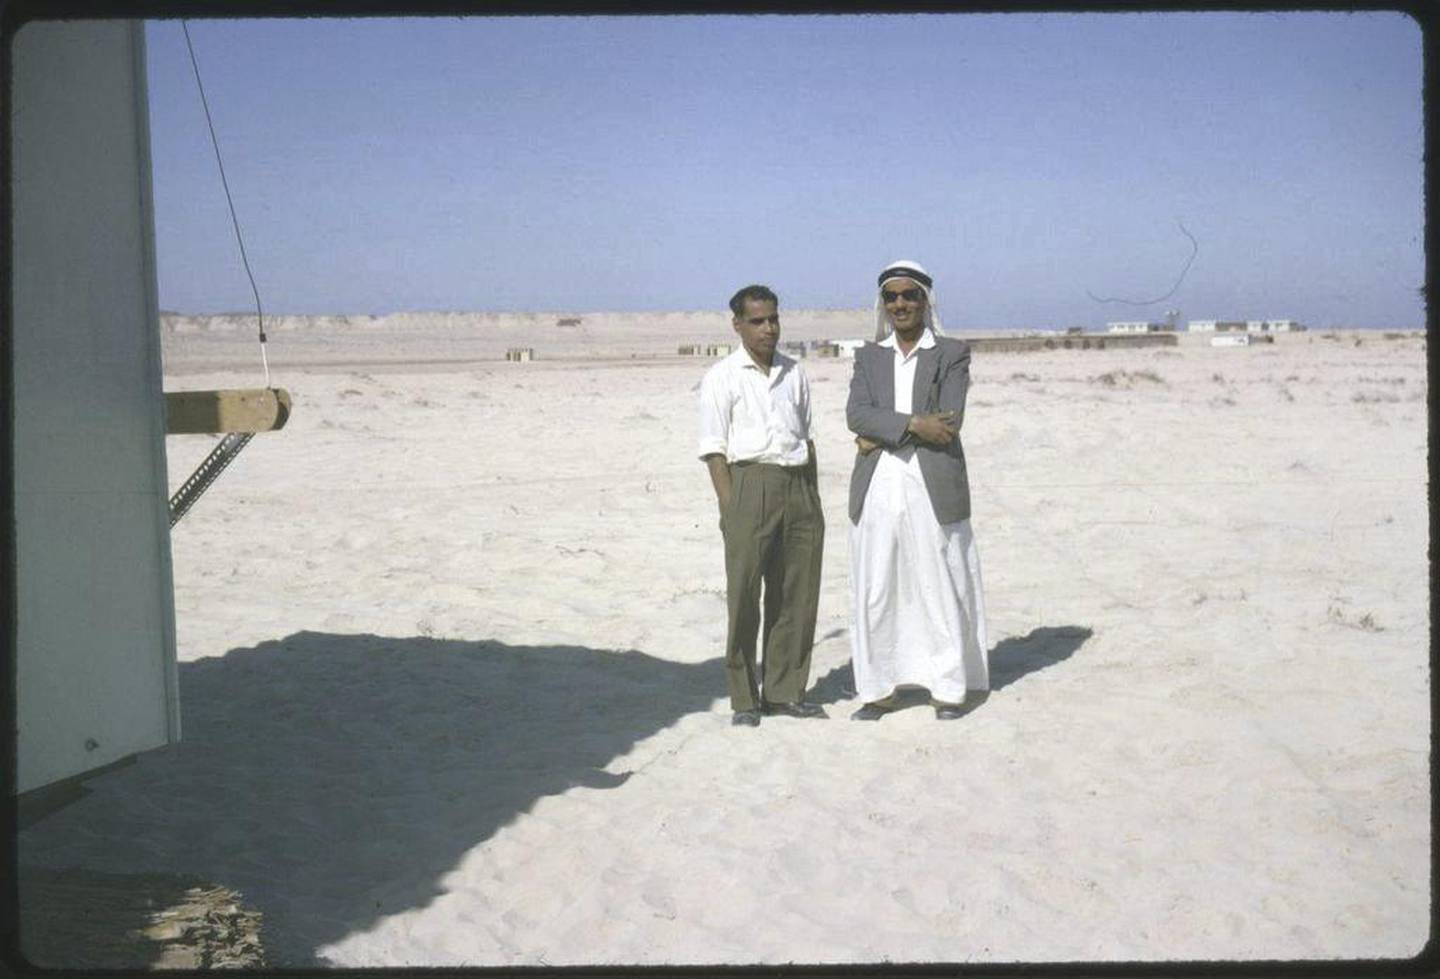 Jebel Dhana, Abu Dhabi 1963 Two employees of the British Bank of the Middle East, Abu Dhabi taken on a construction site in Jebel Dhana, where Wimpeys were building a new oil terminal. On the left is, Juveira , a clerk and on the right, Ali Bhutti, who was a cashier and an Abu Dhabi local. [Note - at this time there were very few locals, who had had an education and it was certainly not common to find many who spoke English. Shortly after this photograph was taken, Bhutti was summoned to the Palace by the Ruler, Sheikh Shakbhut and appointed the new Postmaster of Abu Dhabi. The Ruler had decided that he would take over the running of the Postal Administration from the British Goverment. Although Bhutti enjoyed his work with the Bank and his prospects with them were good in those days you did not refuse the wishes of the Ruler!] Photo by David Riley